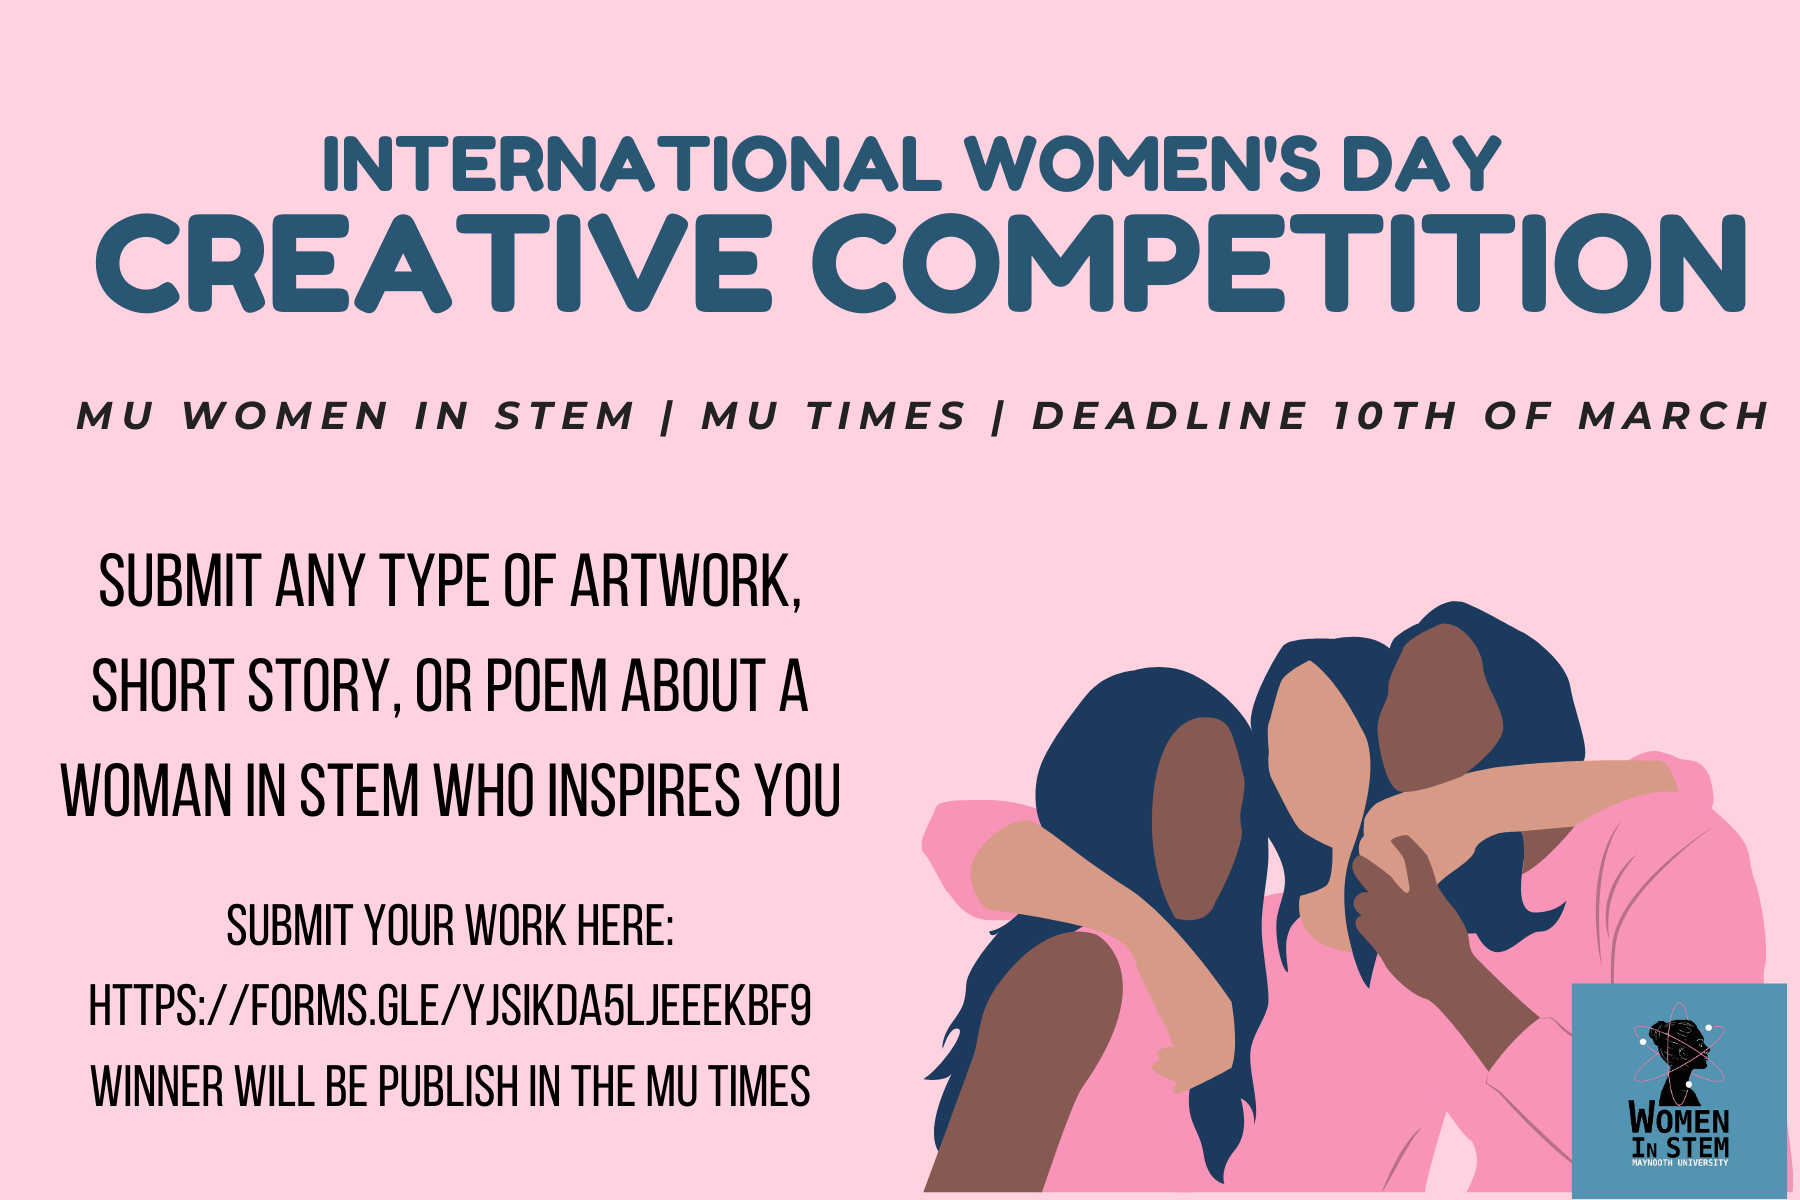 IWD CREATIVE COMPETITION